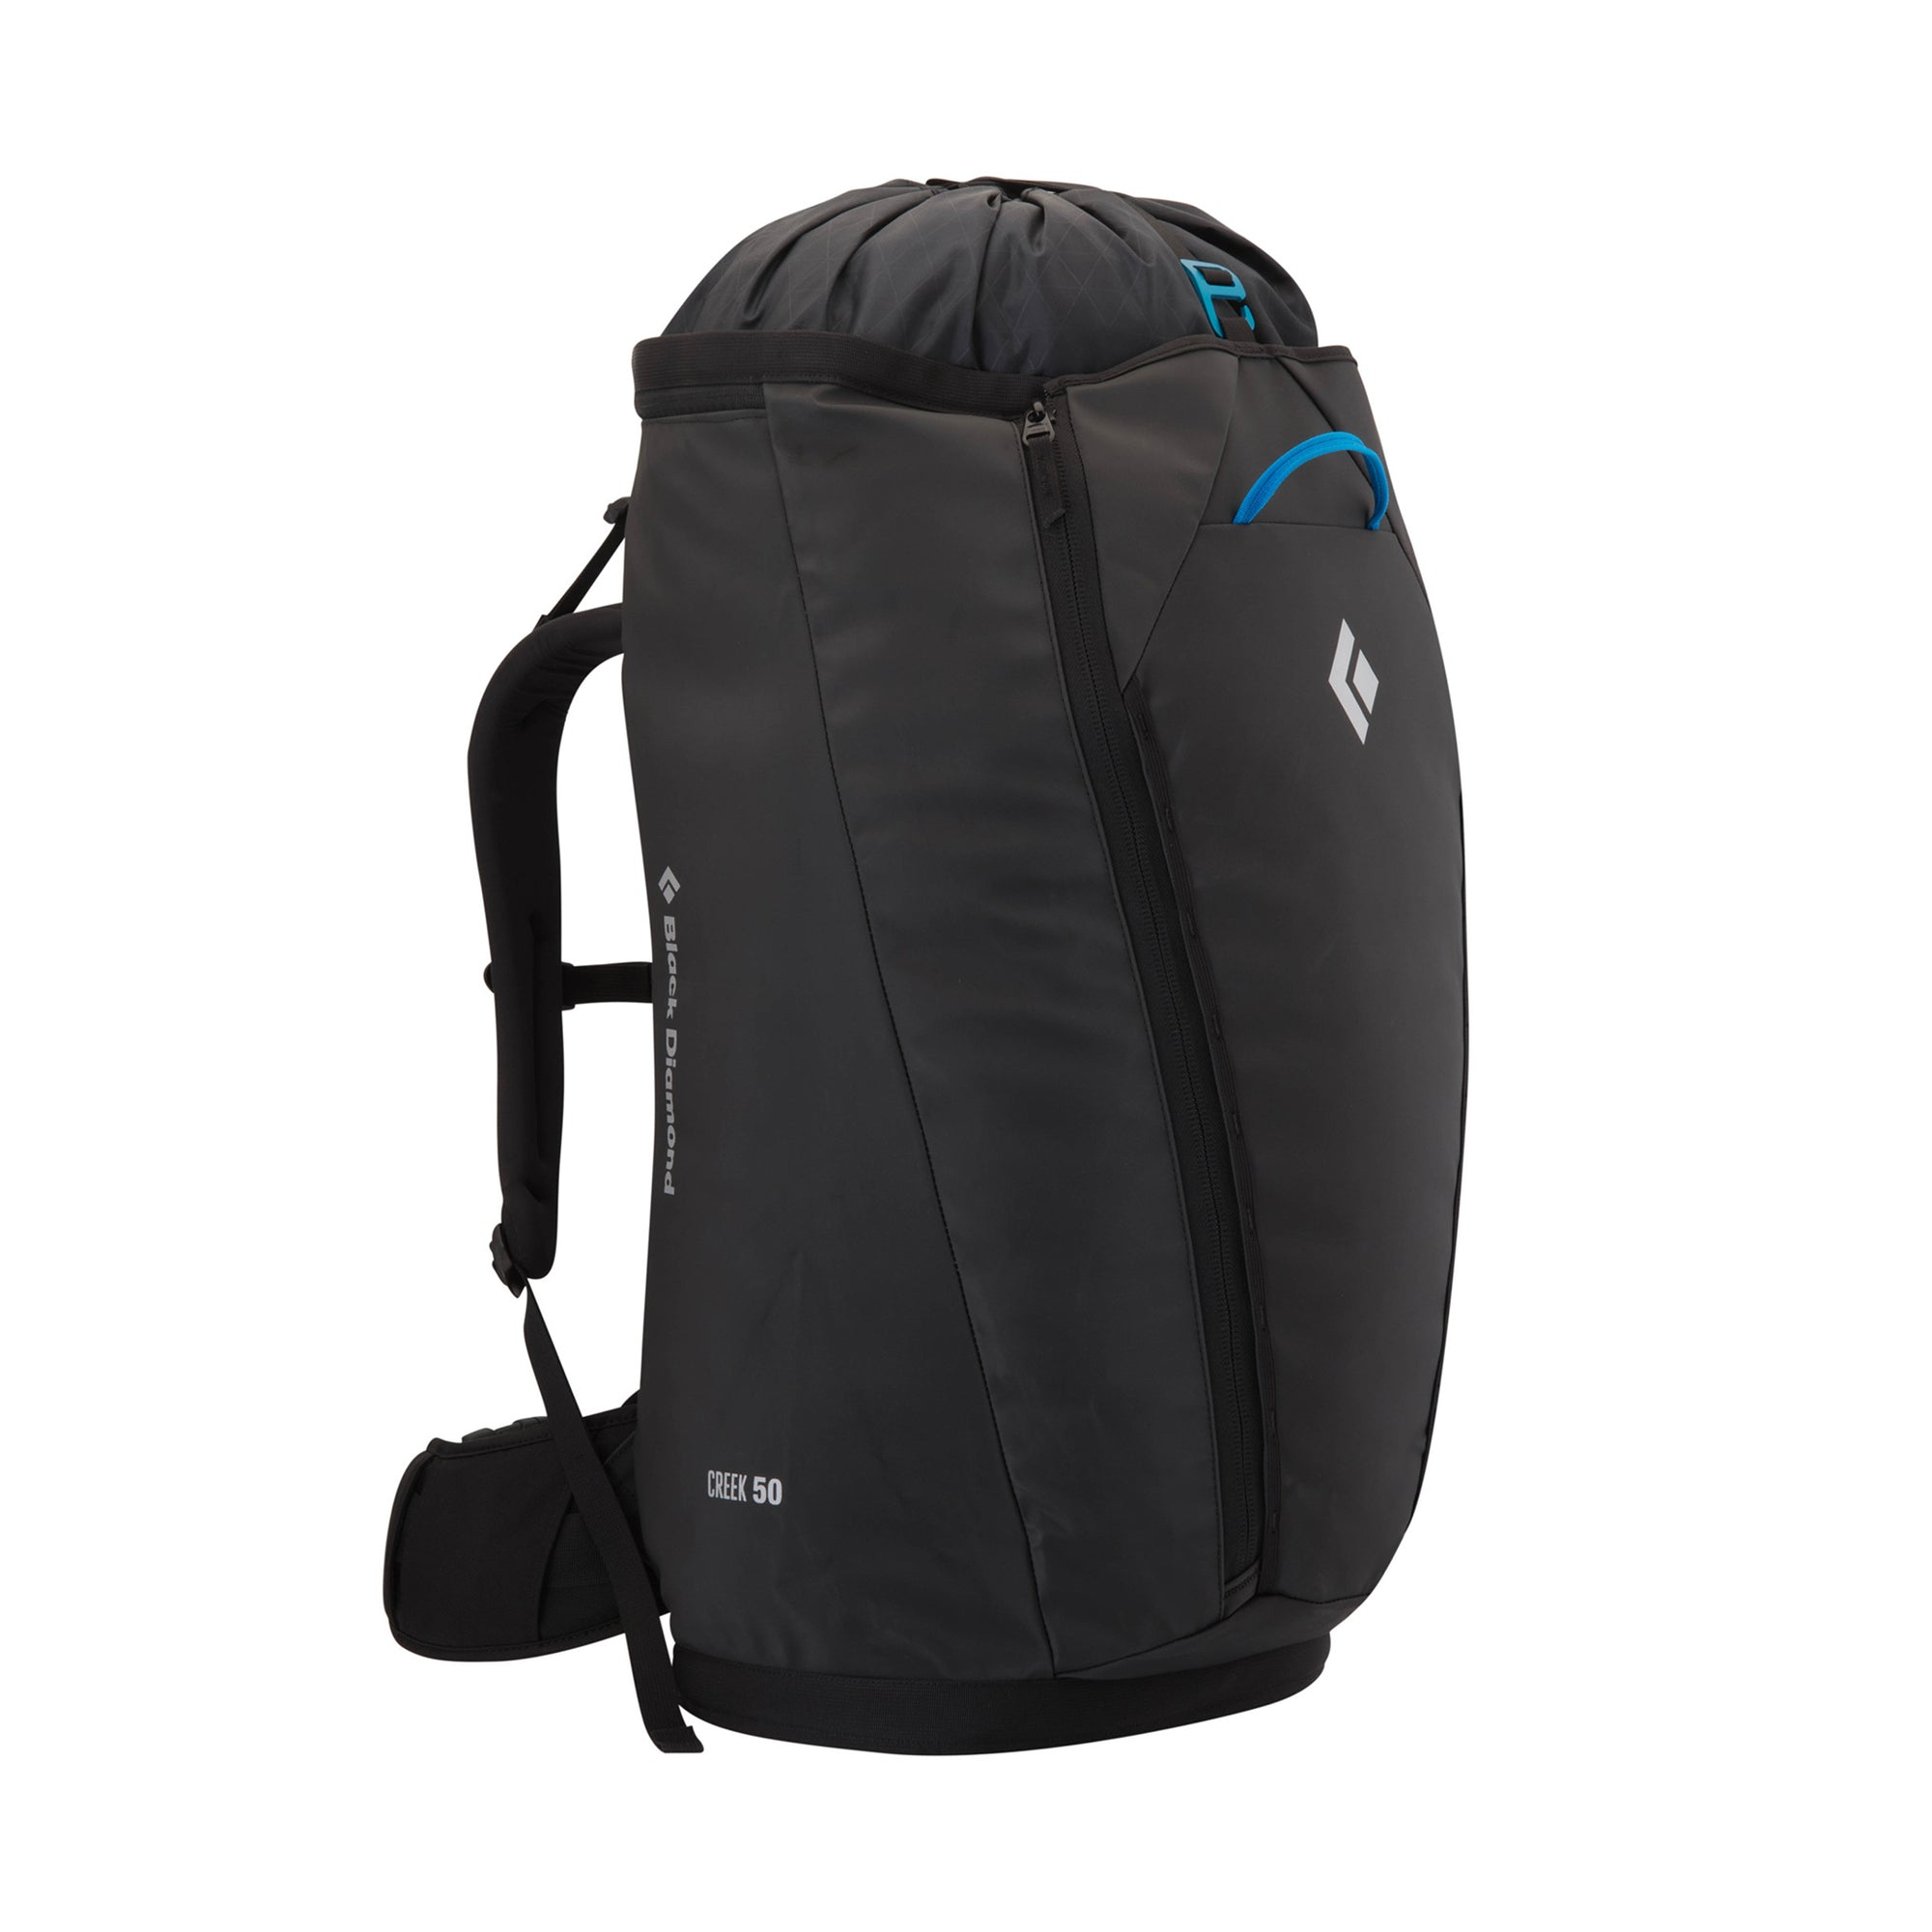 black diamond creek pack 50l, front view